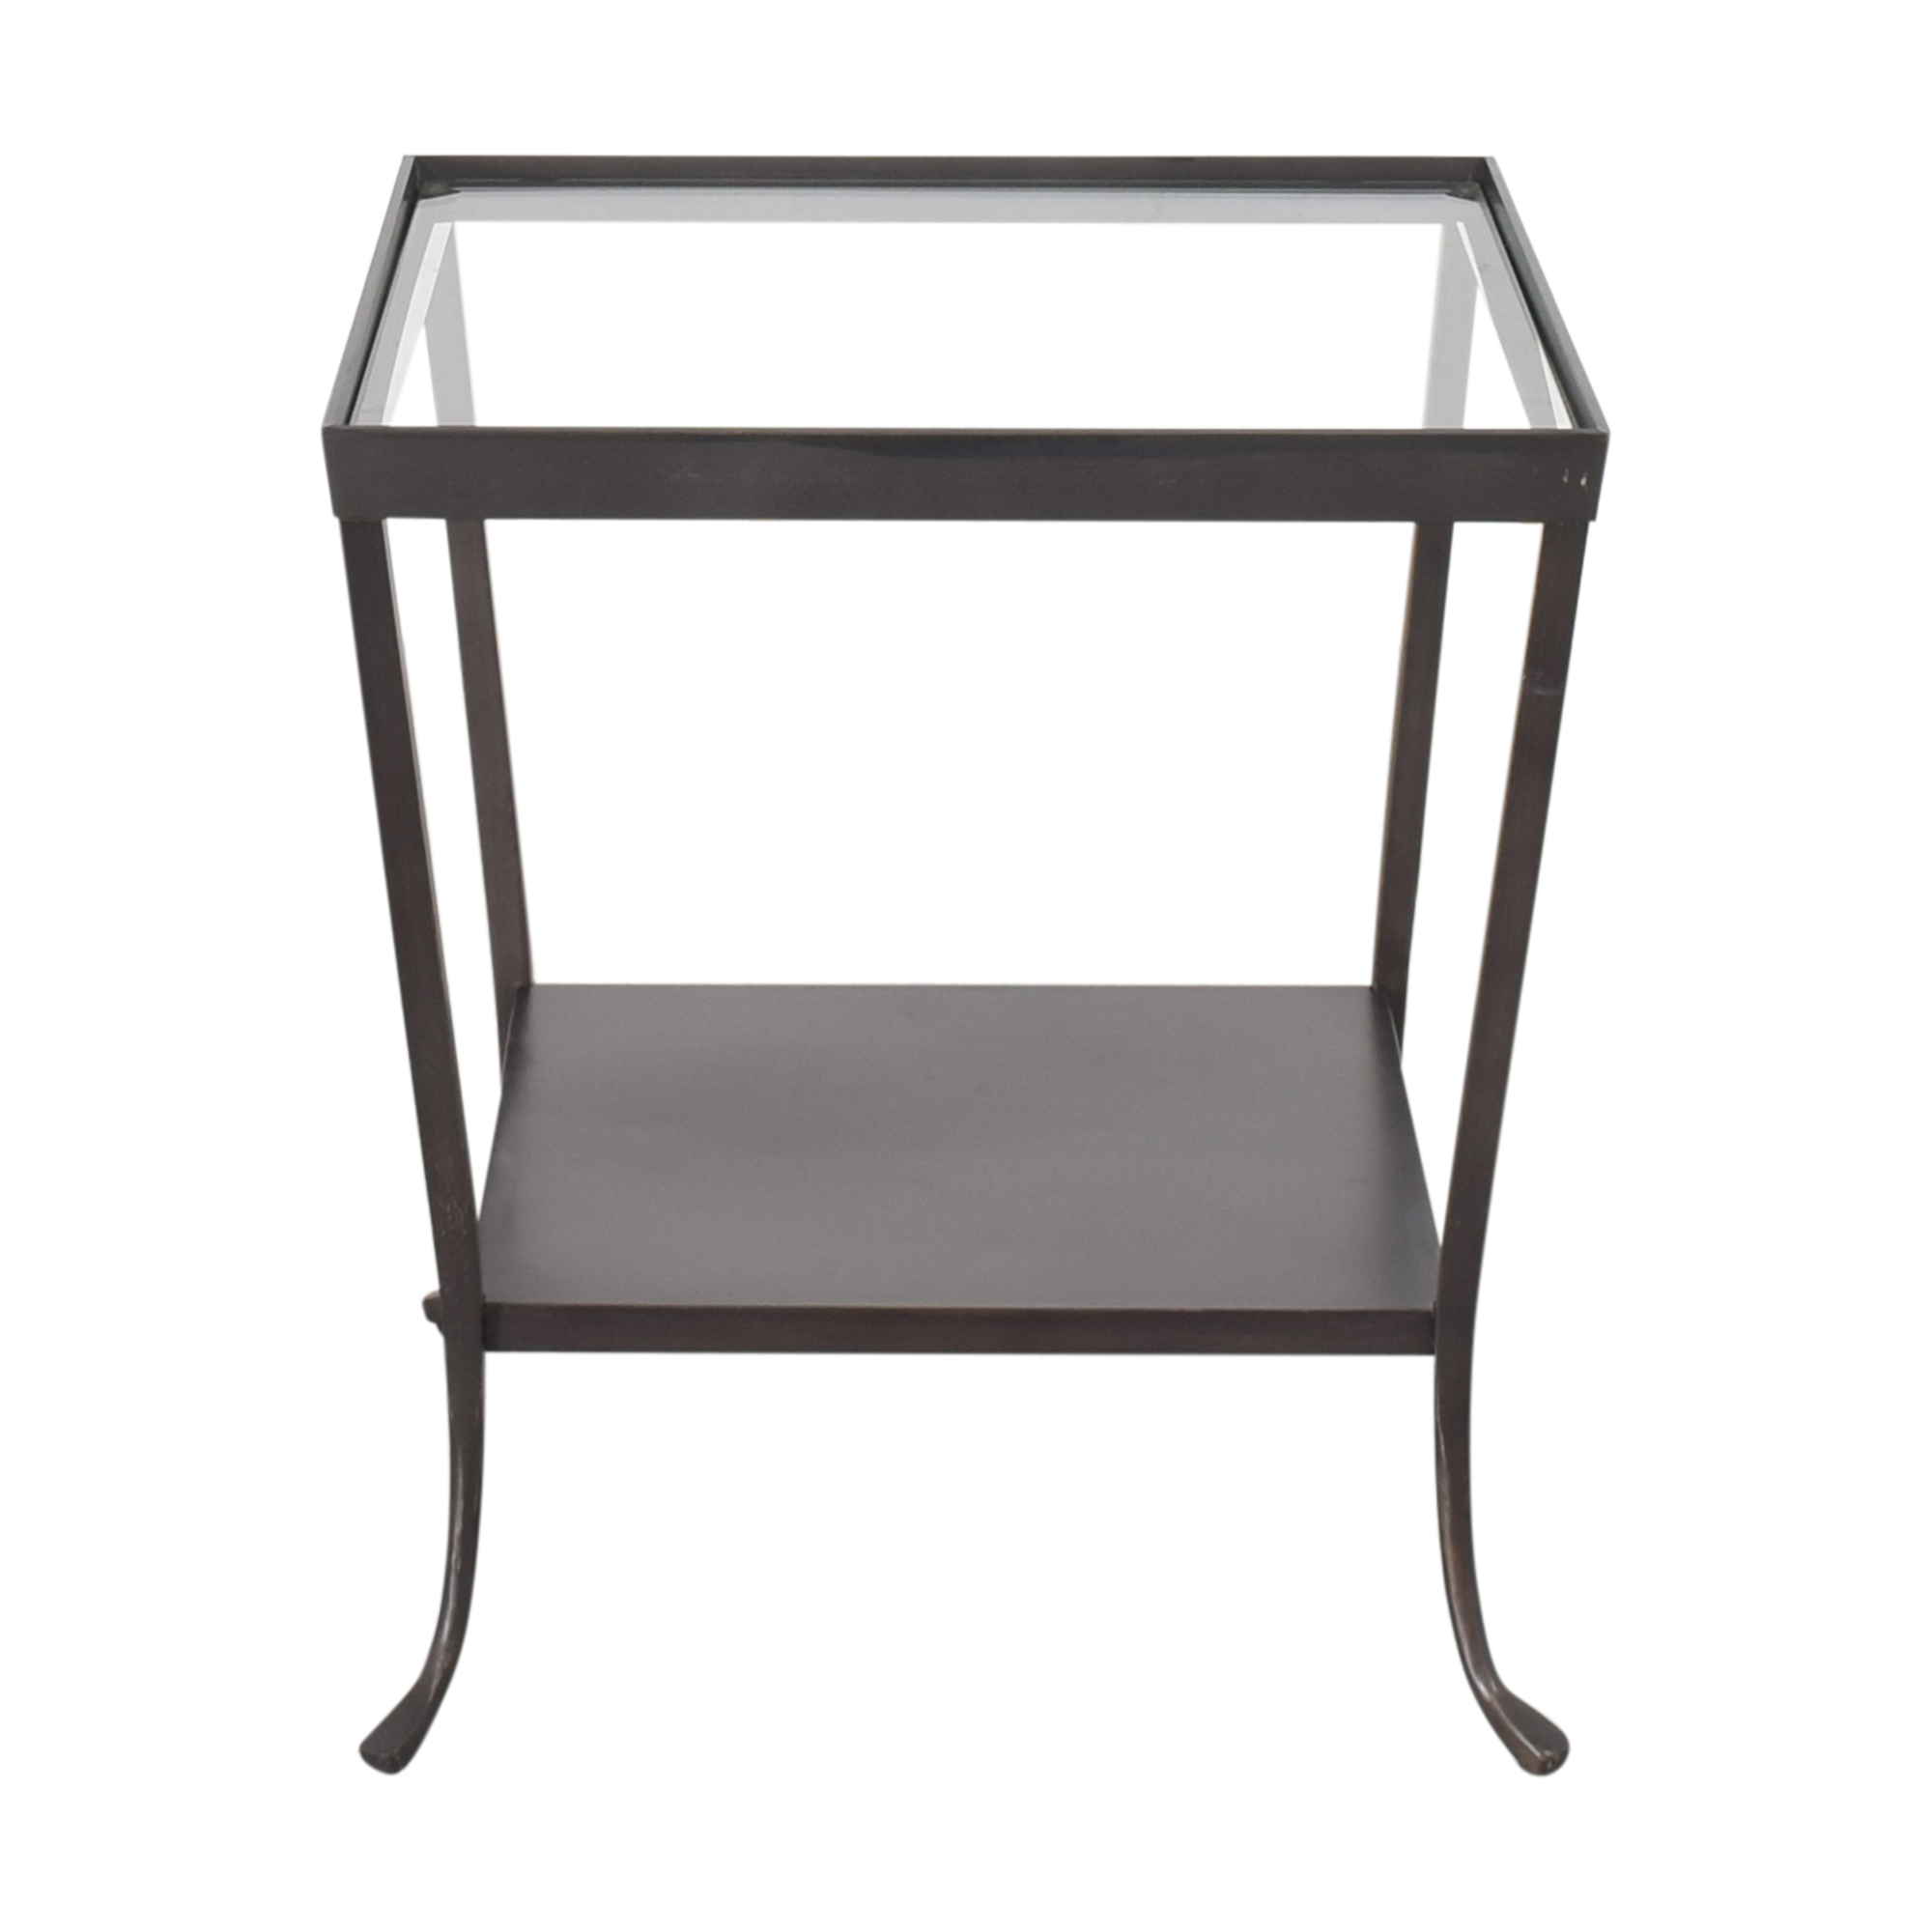 Crate & Barrel Crate & Barrel Square End Table for sale